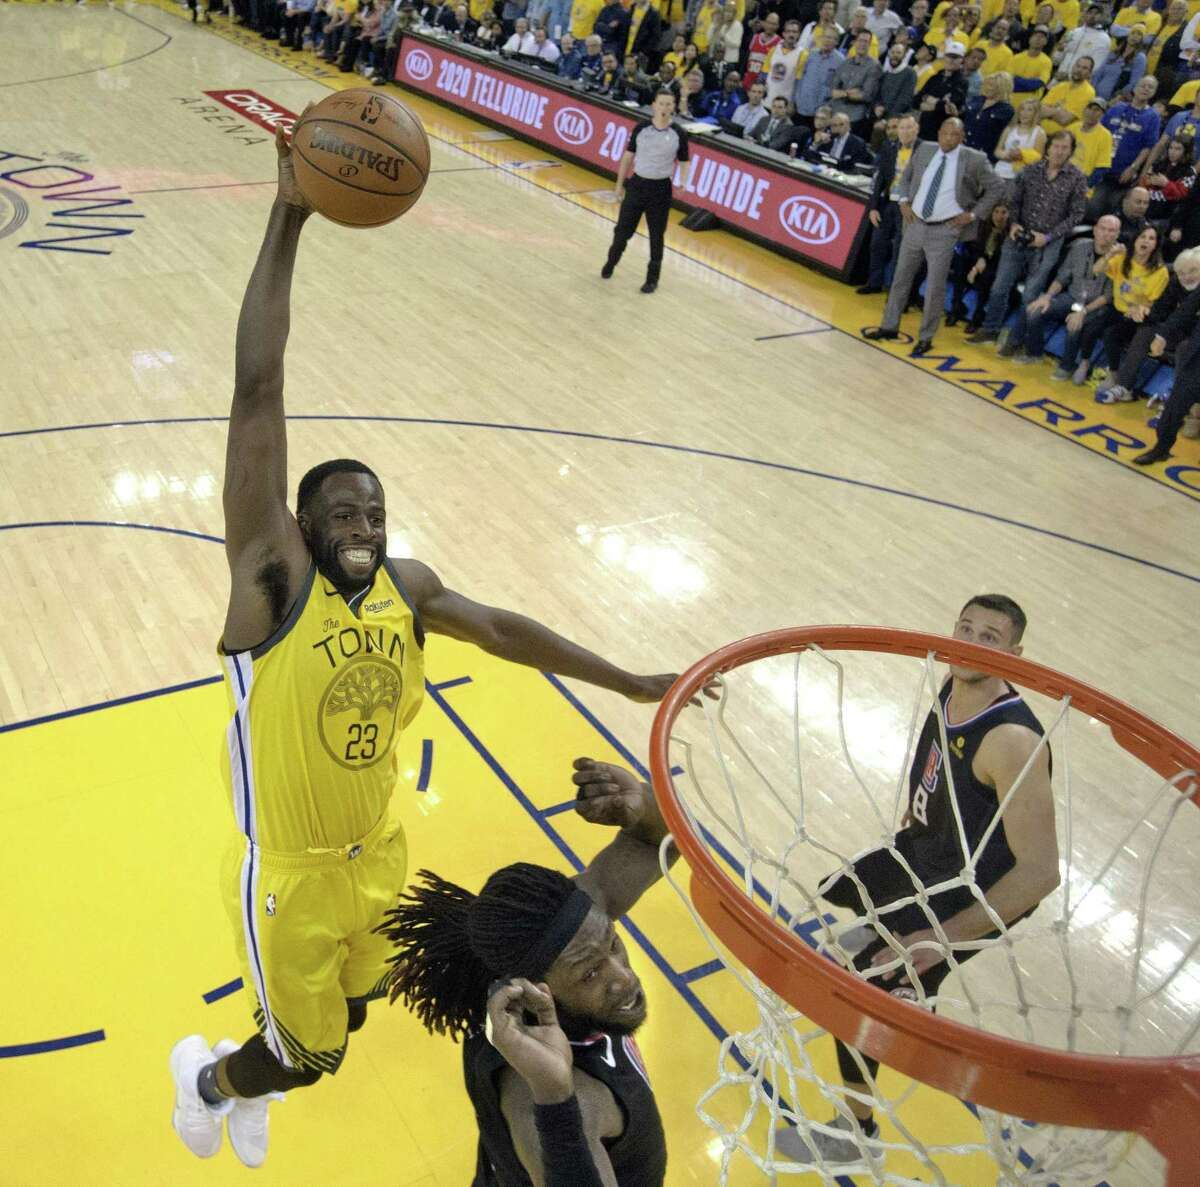 Draymond Green dunks over Montrezl Harrell in the second half as the Golden State Warriors played the Los Angeles Clippers in Game 2 of the First Round of the NBA Playoffs at Oracle Arena on Tuesday, April 16, 2019.